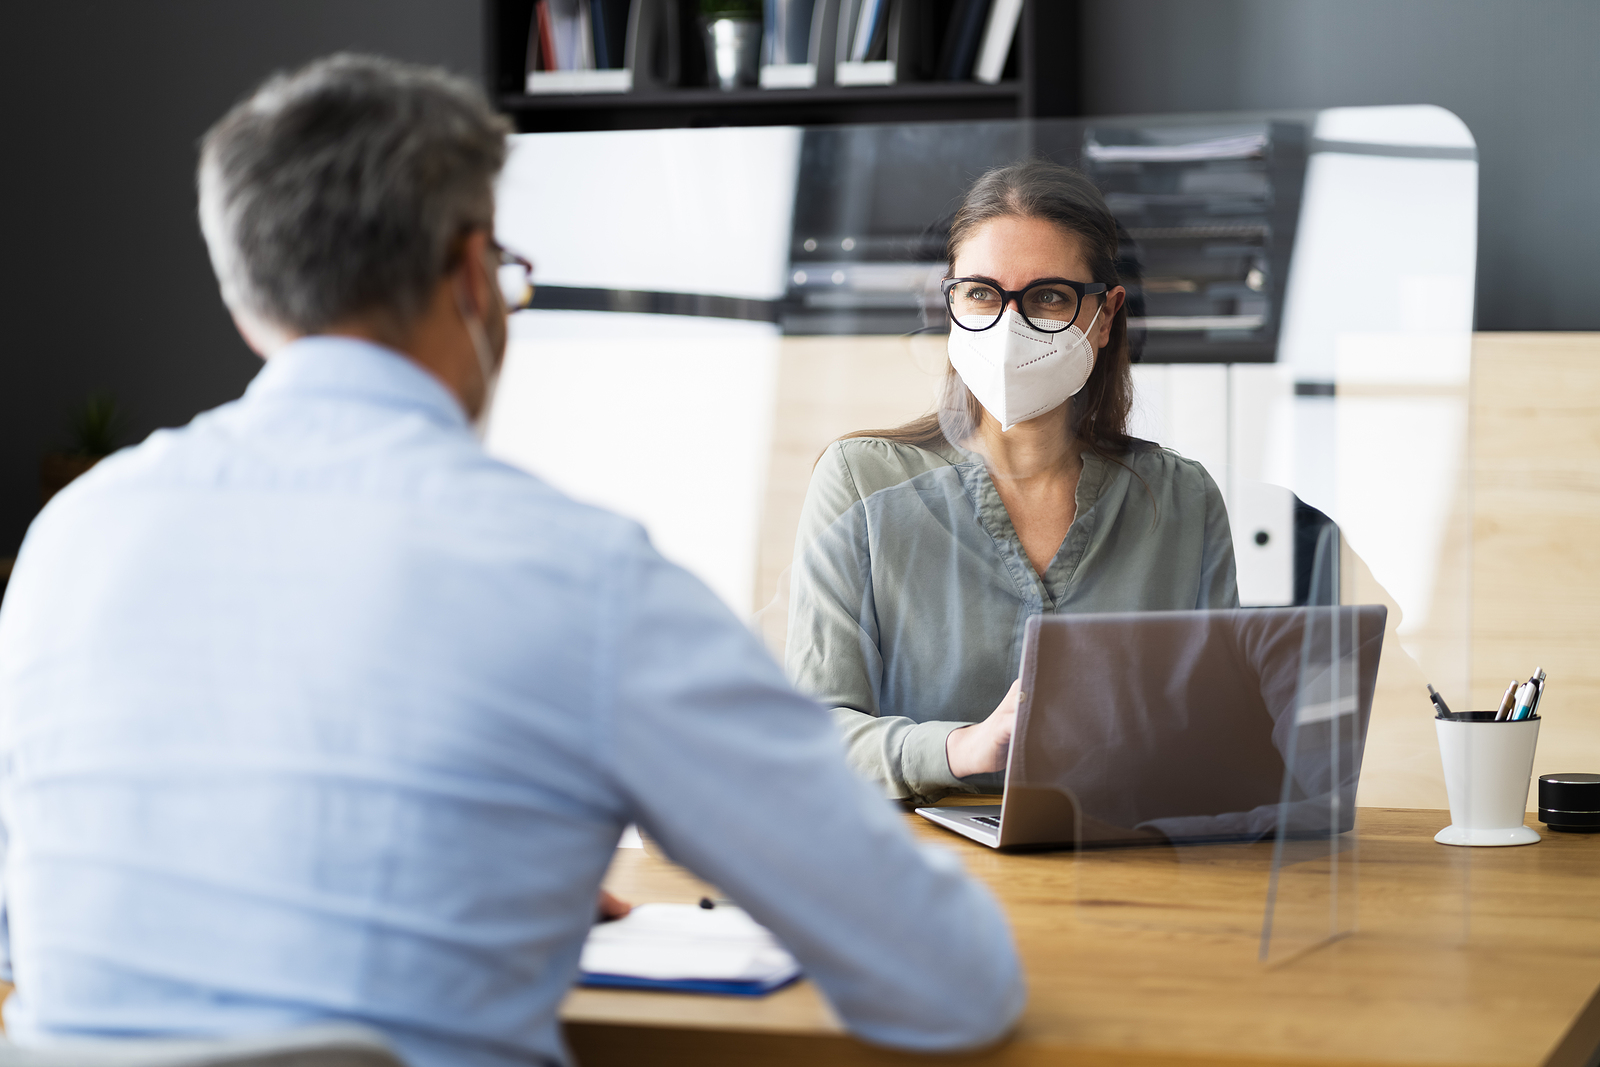 How to Vet Candidates in the Post-Pandemic Job Market